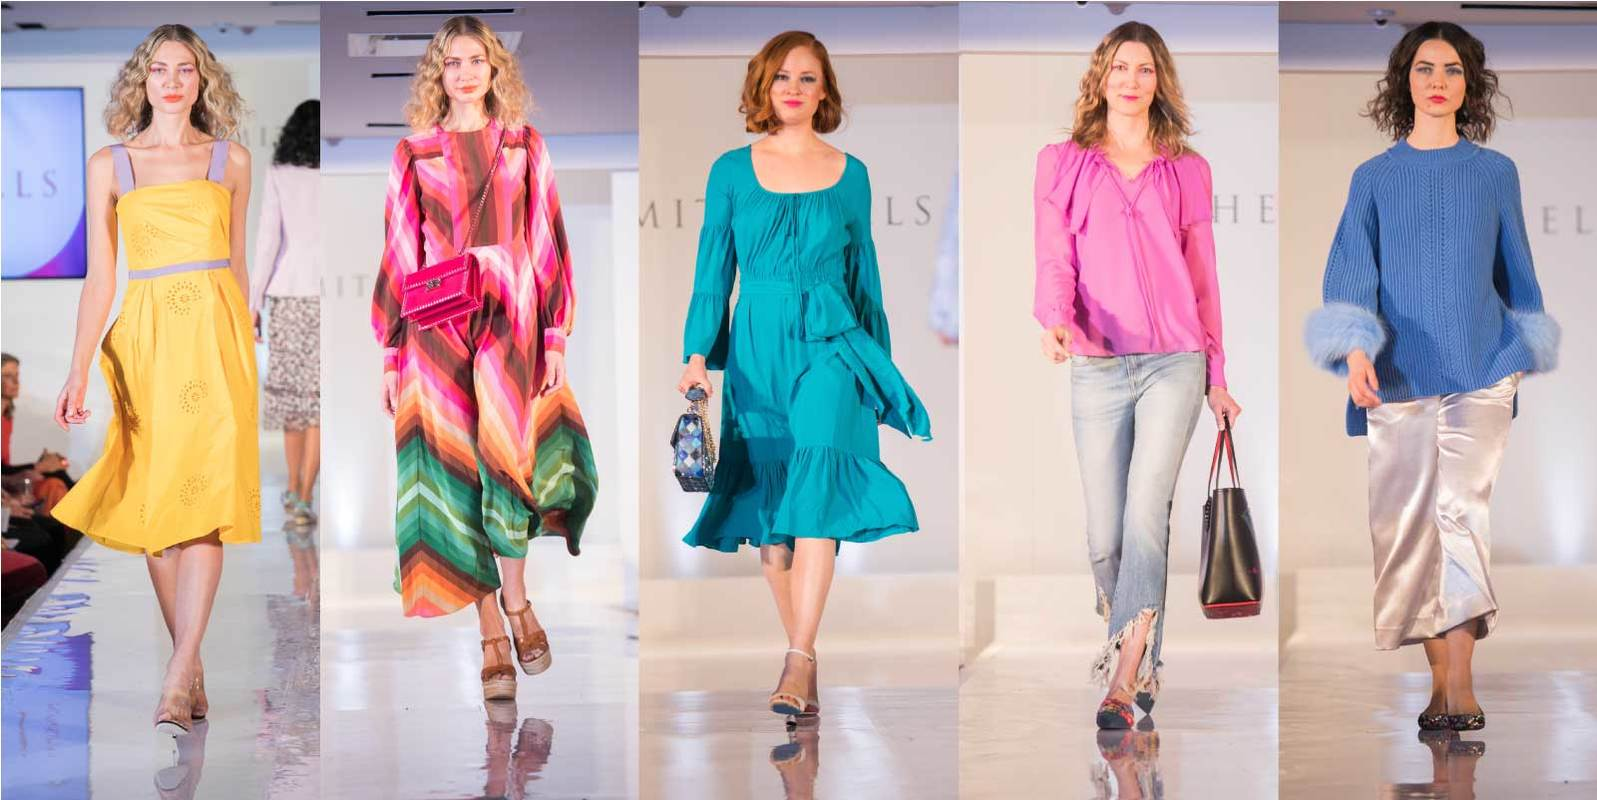 Bold Brights ruled our runway and was one of Spring's most important trends.  See our wide selection of saturated hues